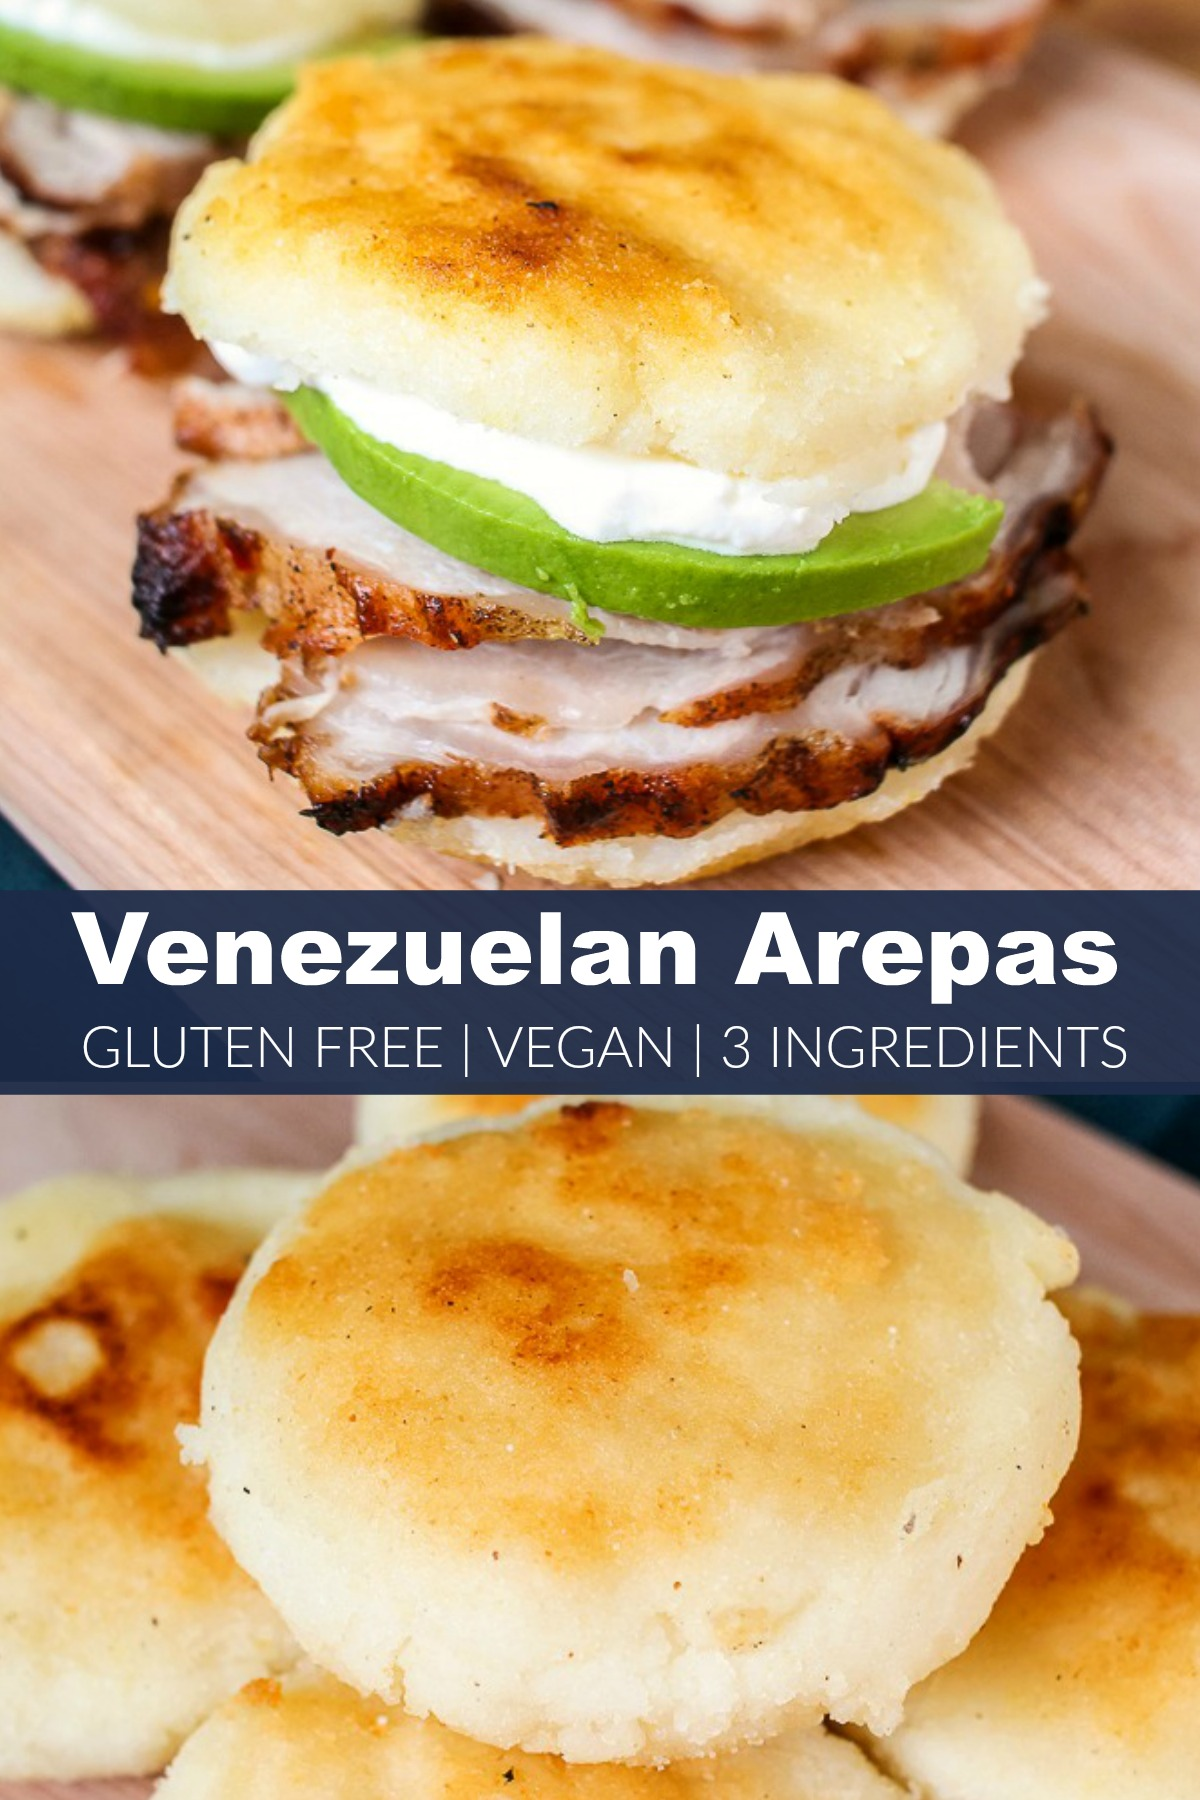 Venezuelan arepa recipe served as a sandwich or side dish